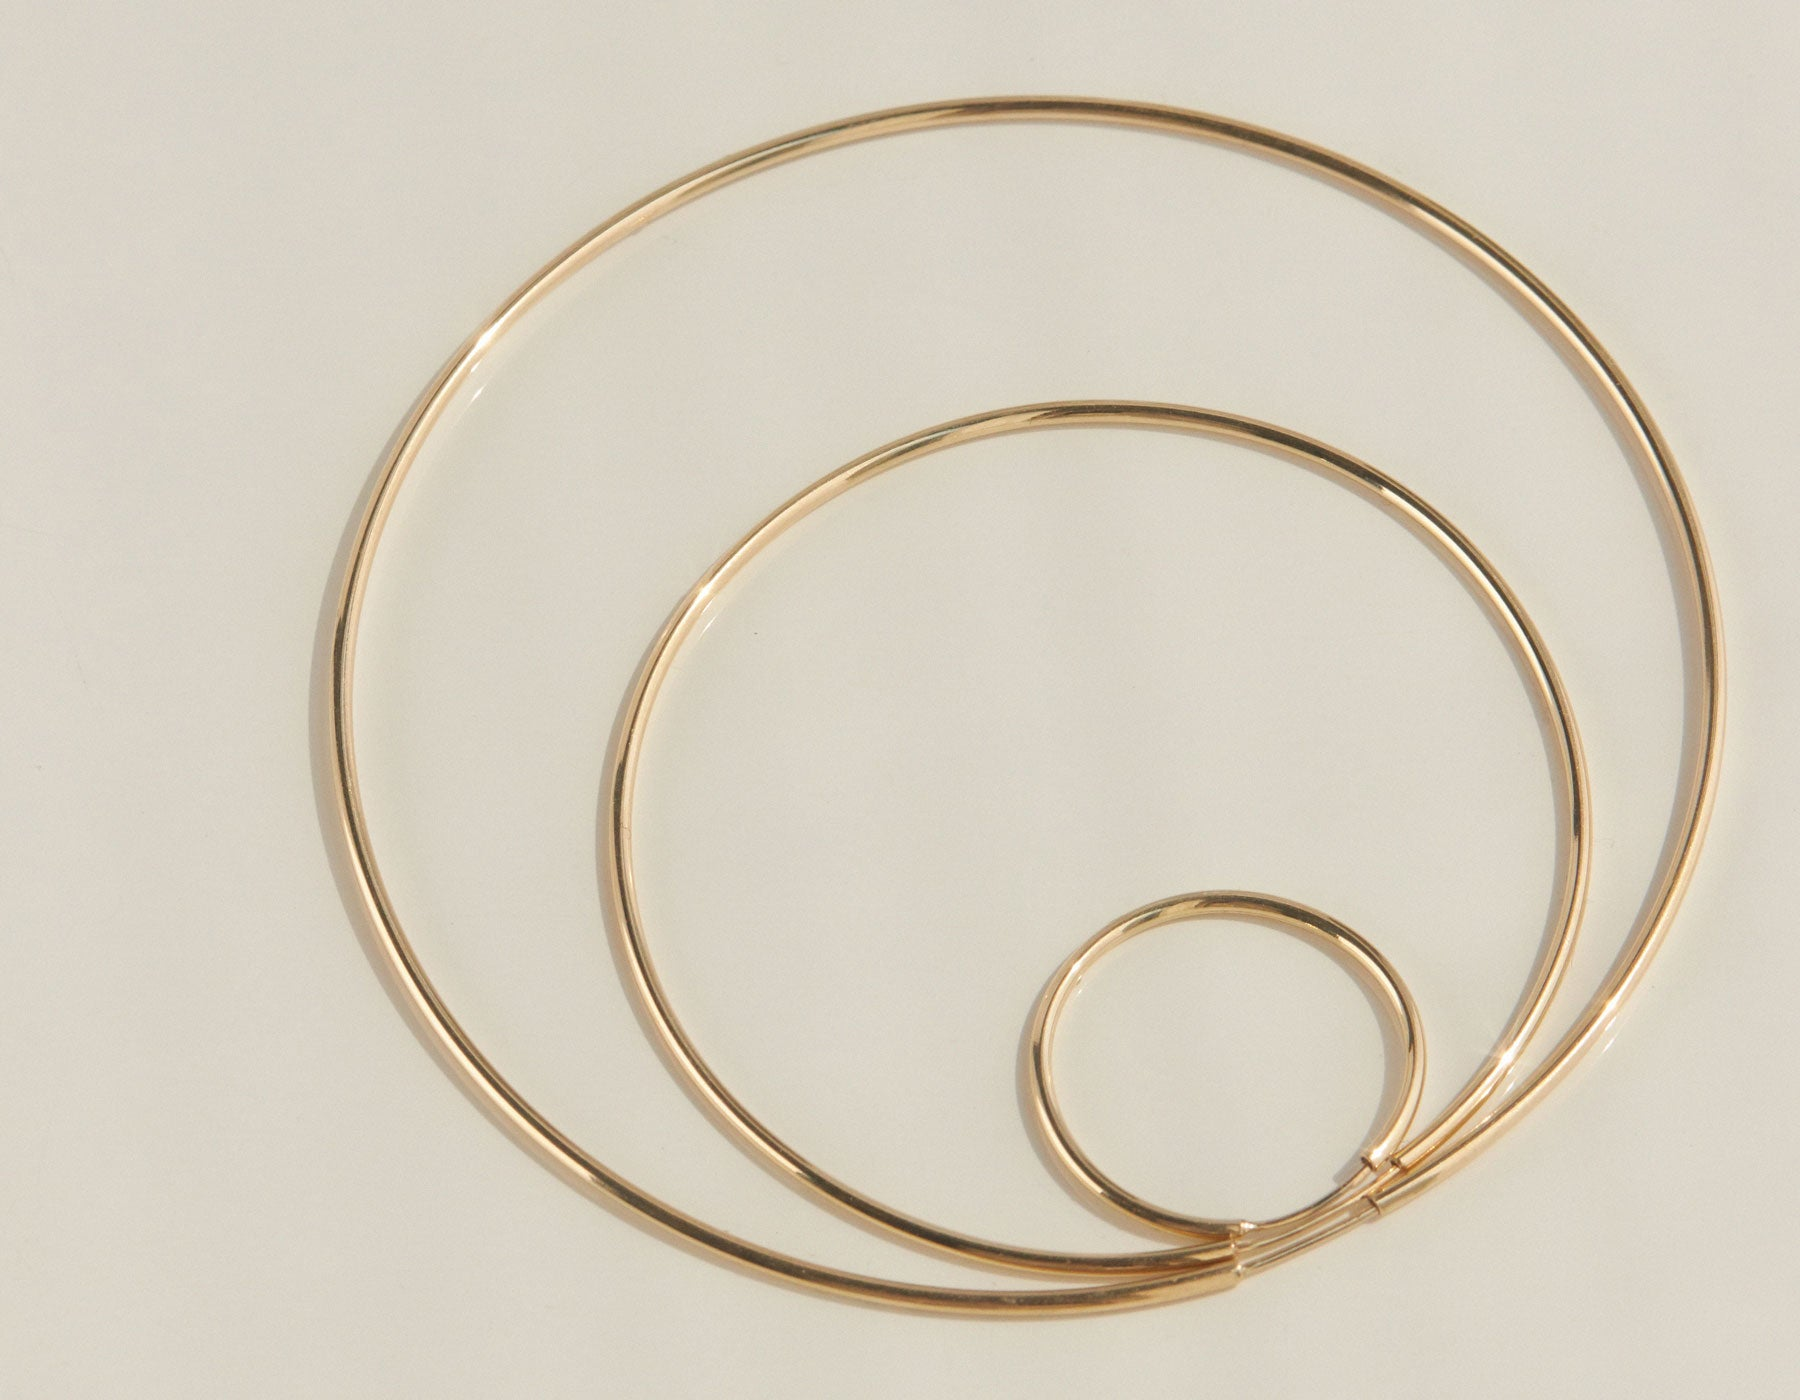 Vrai classic thin small hoop medium hoop large hoop earring in 14K solid gold